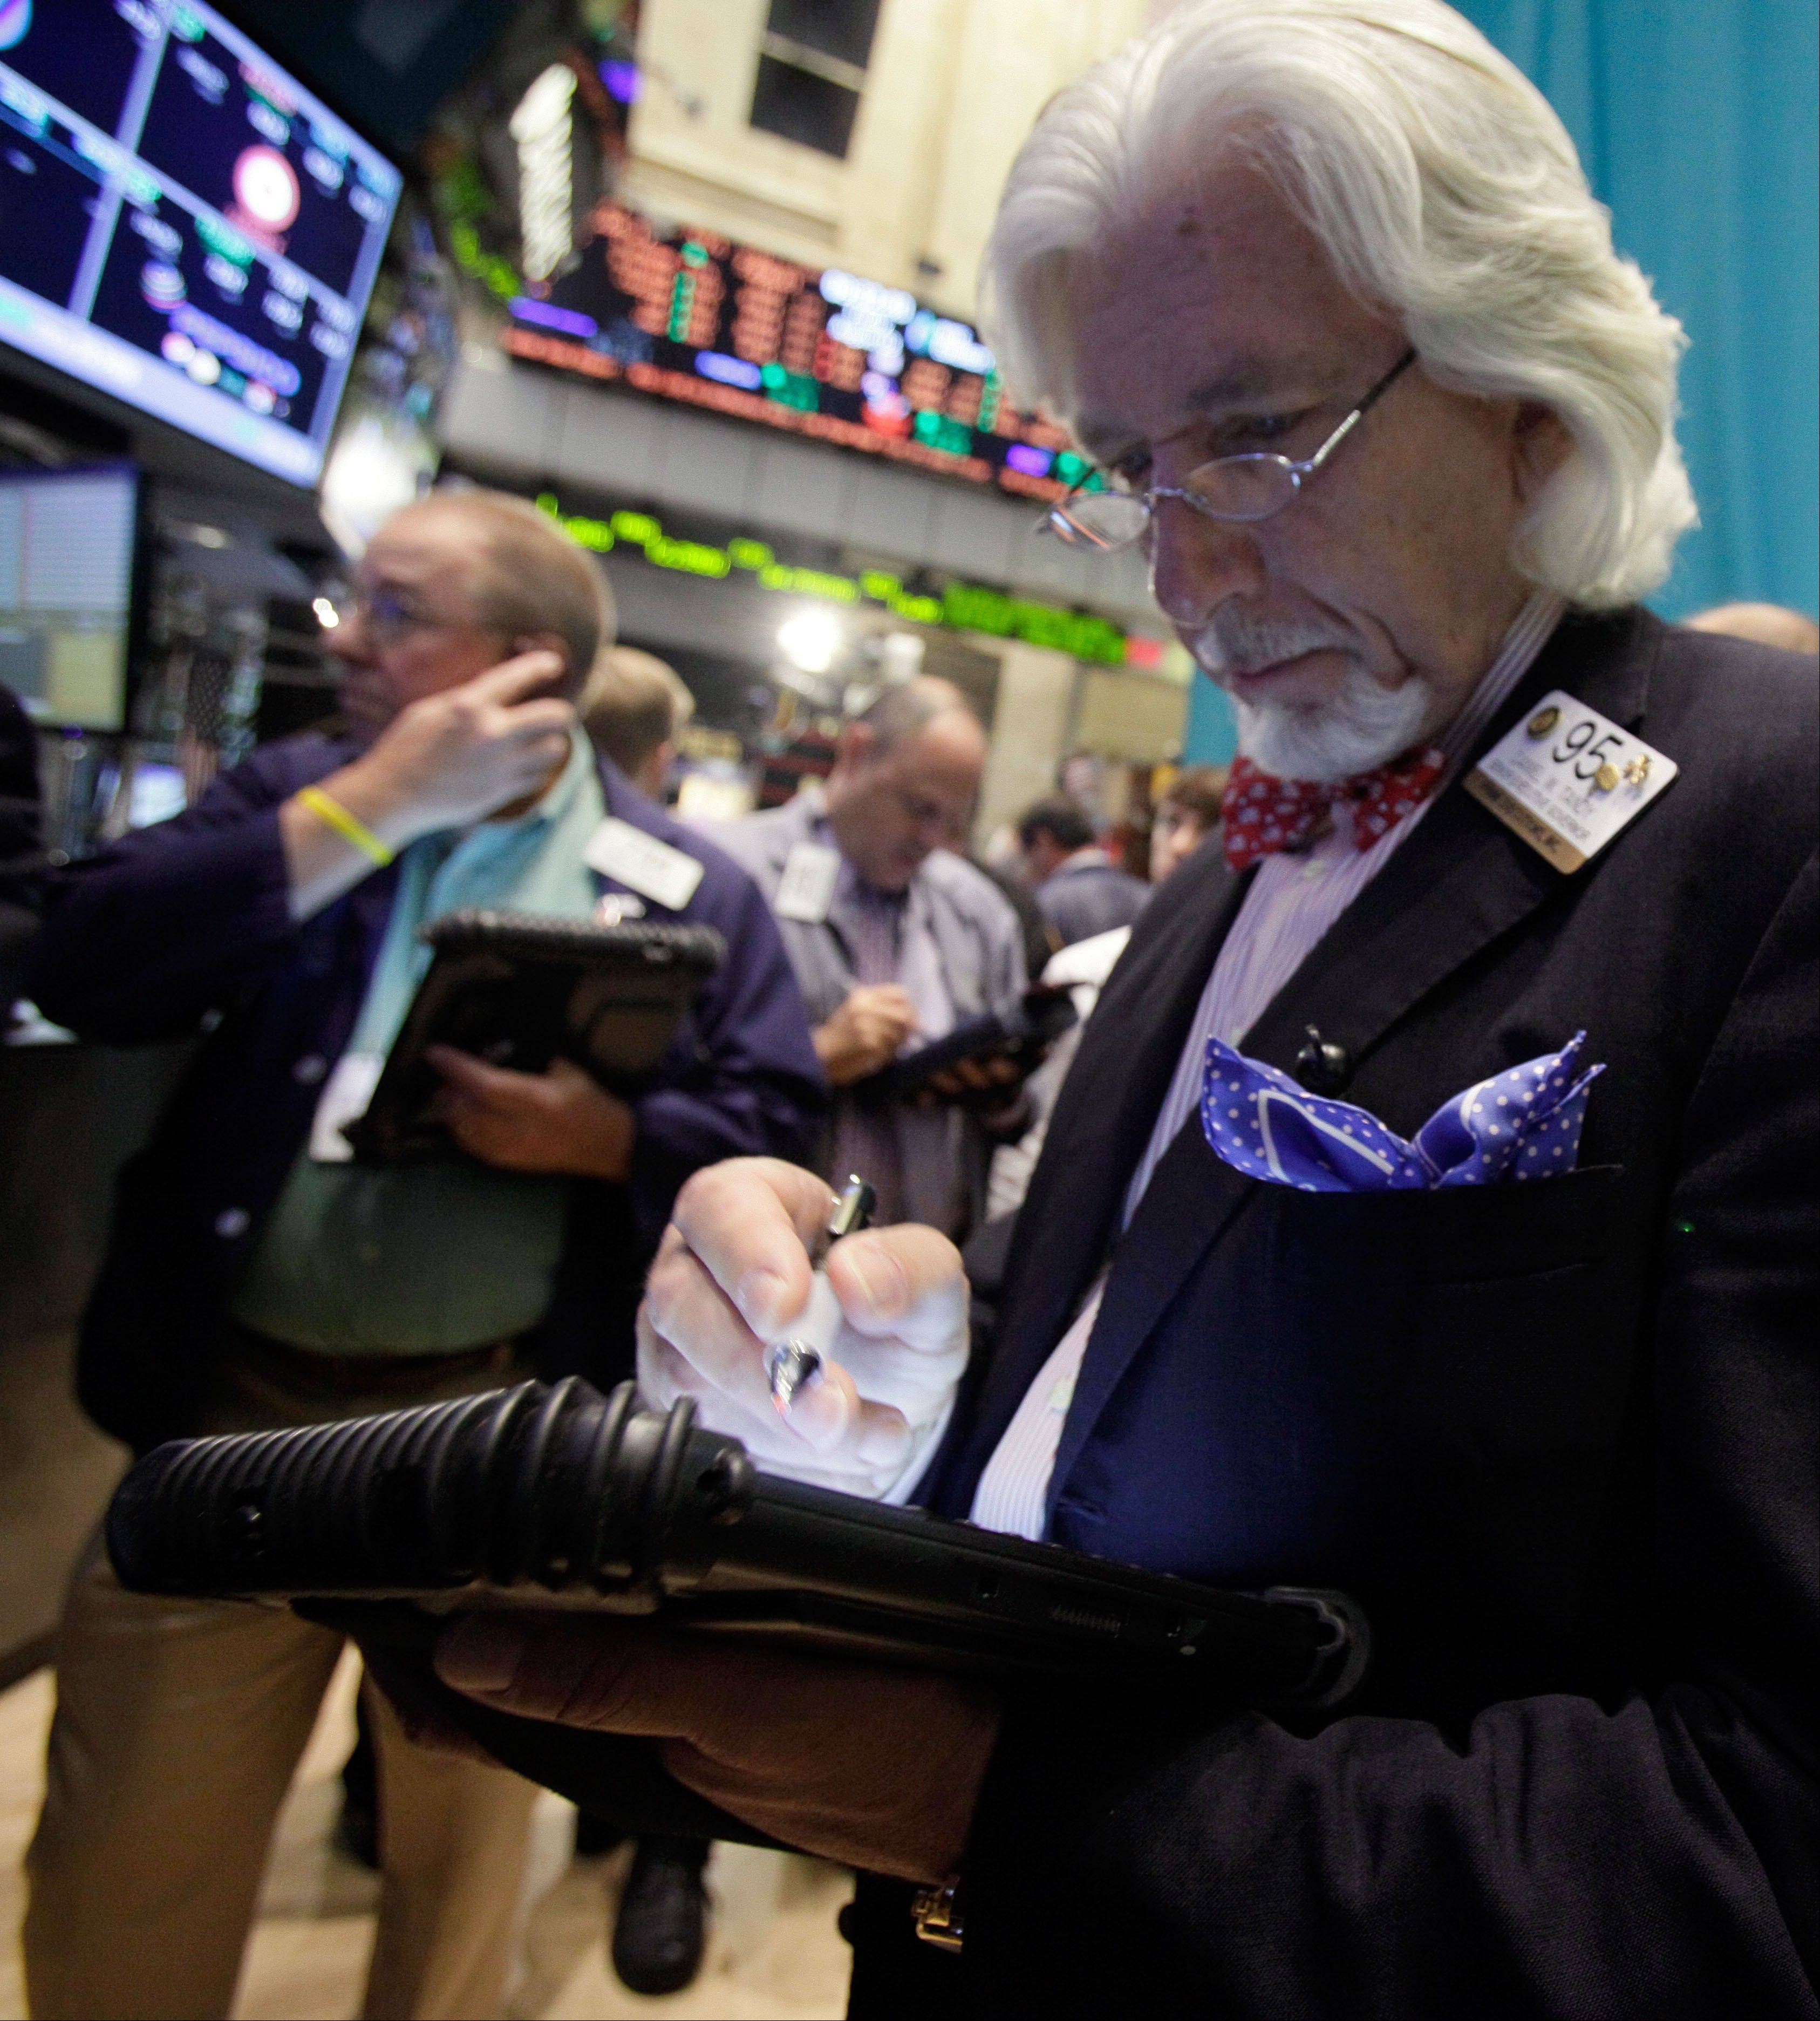 U.S. stocks fell, following yesterday's drop in the Standard & Poor's 500 Index, as investors watched economic reports ahead of Federal Reserve Chairman Ben S. Bernanke's speech on the economy in three days.